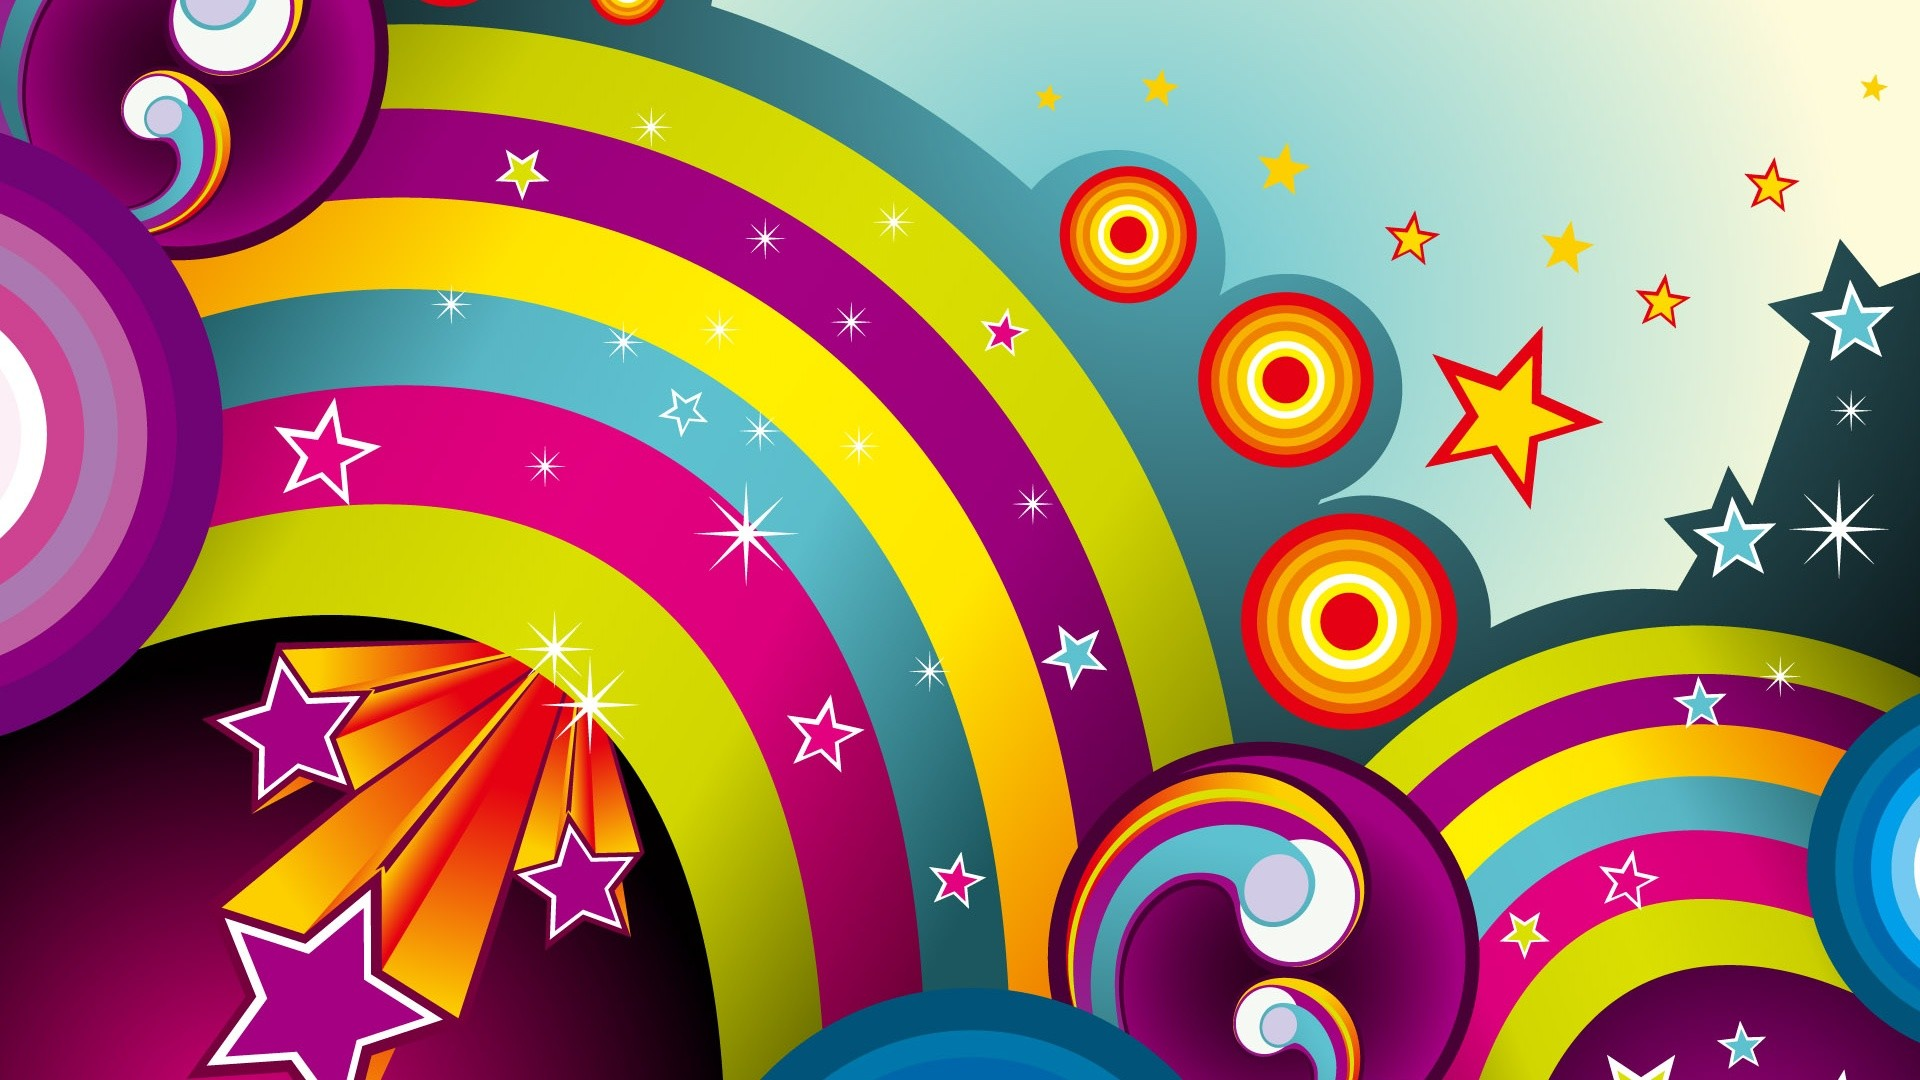 Colorful Wallpaper Designs 1